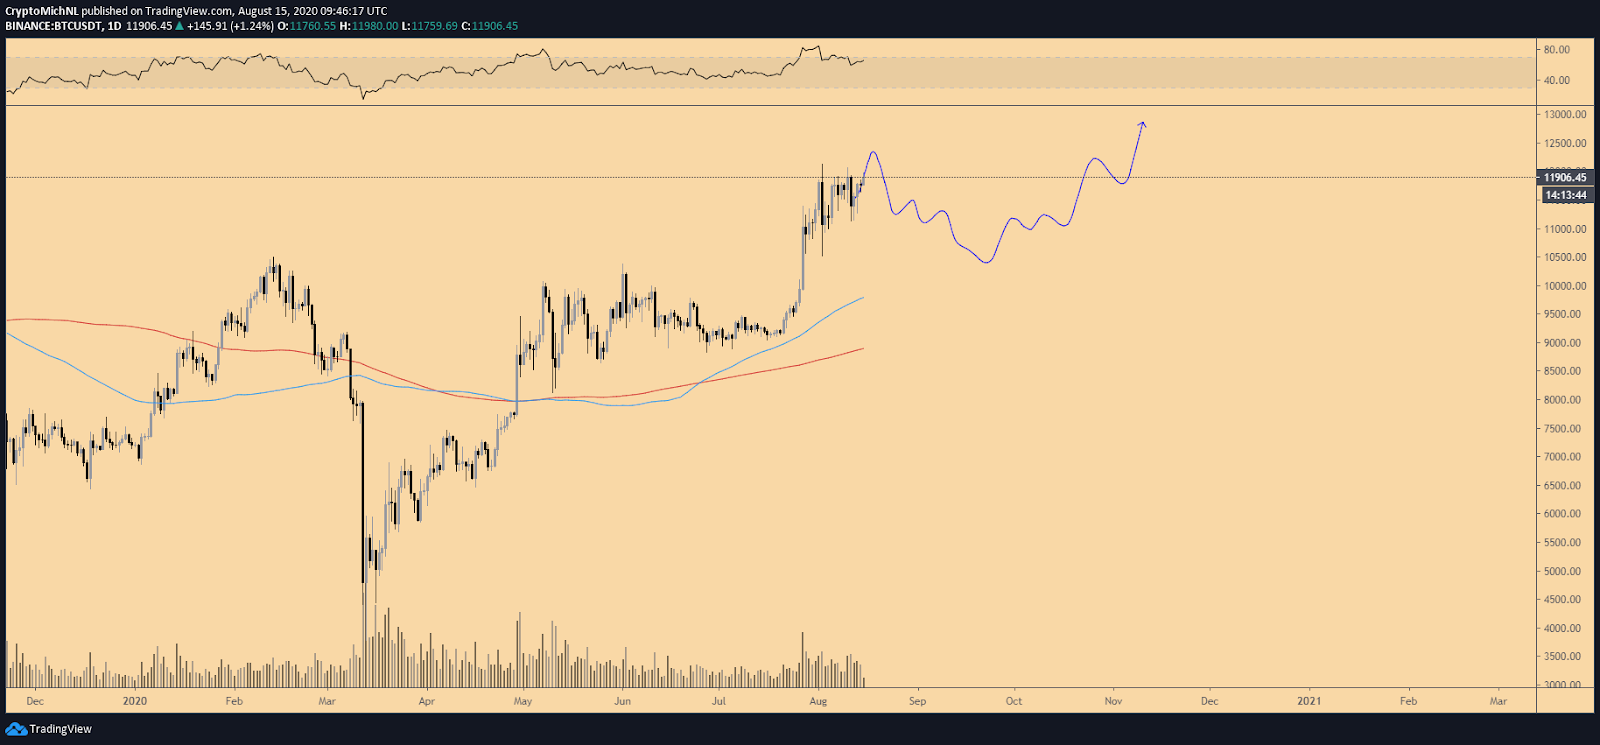 BTC/USD price chart showing possible $10,500 retrace and reversal